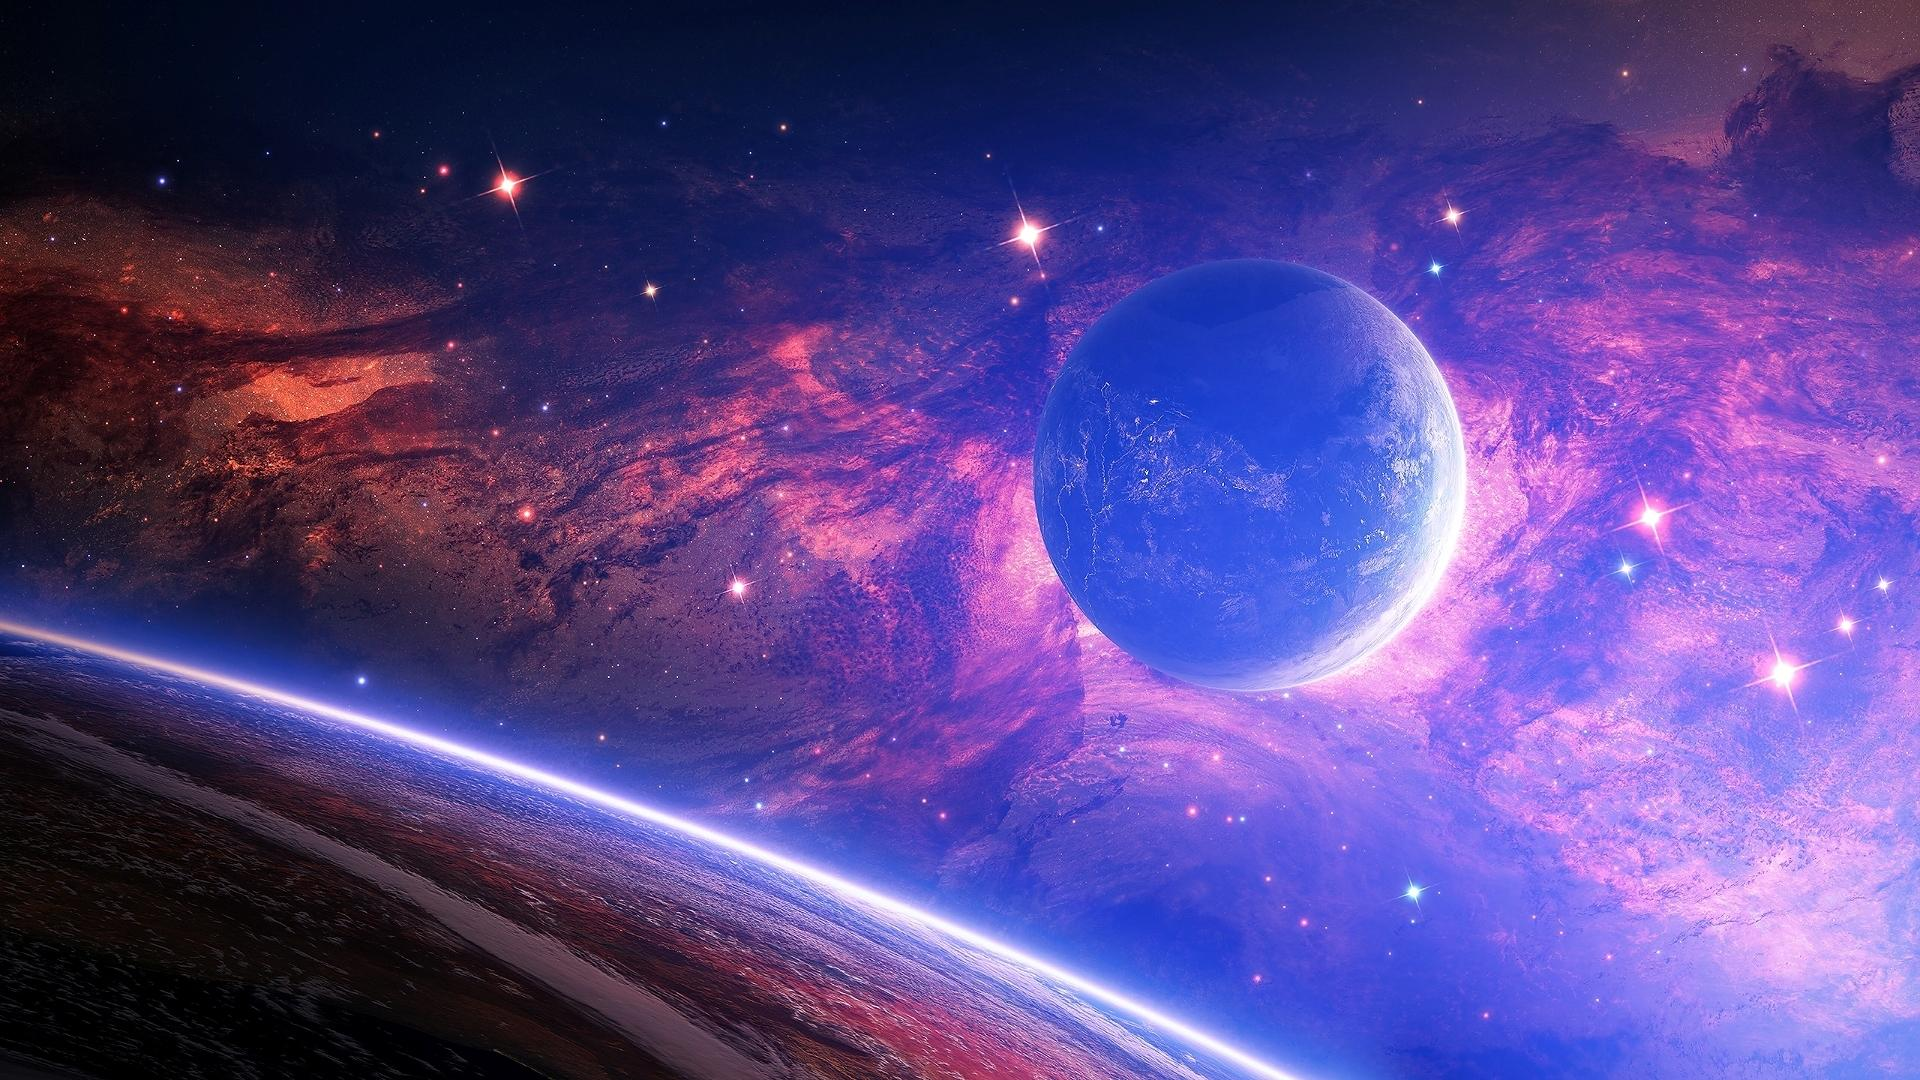 Images of Beautiful space wallpapers | 1920x1080